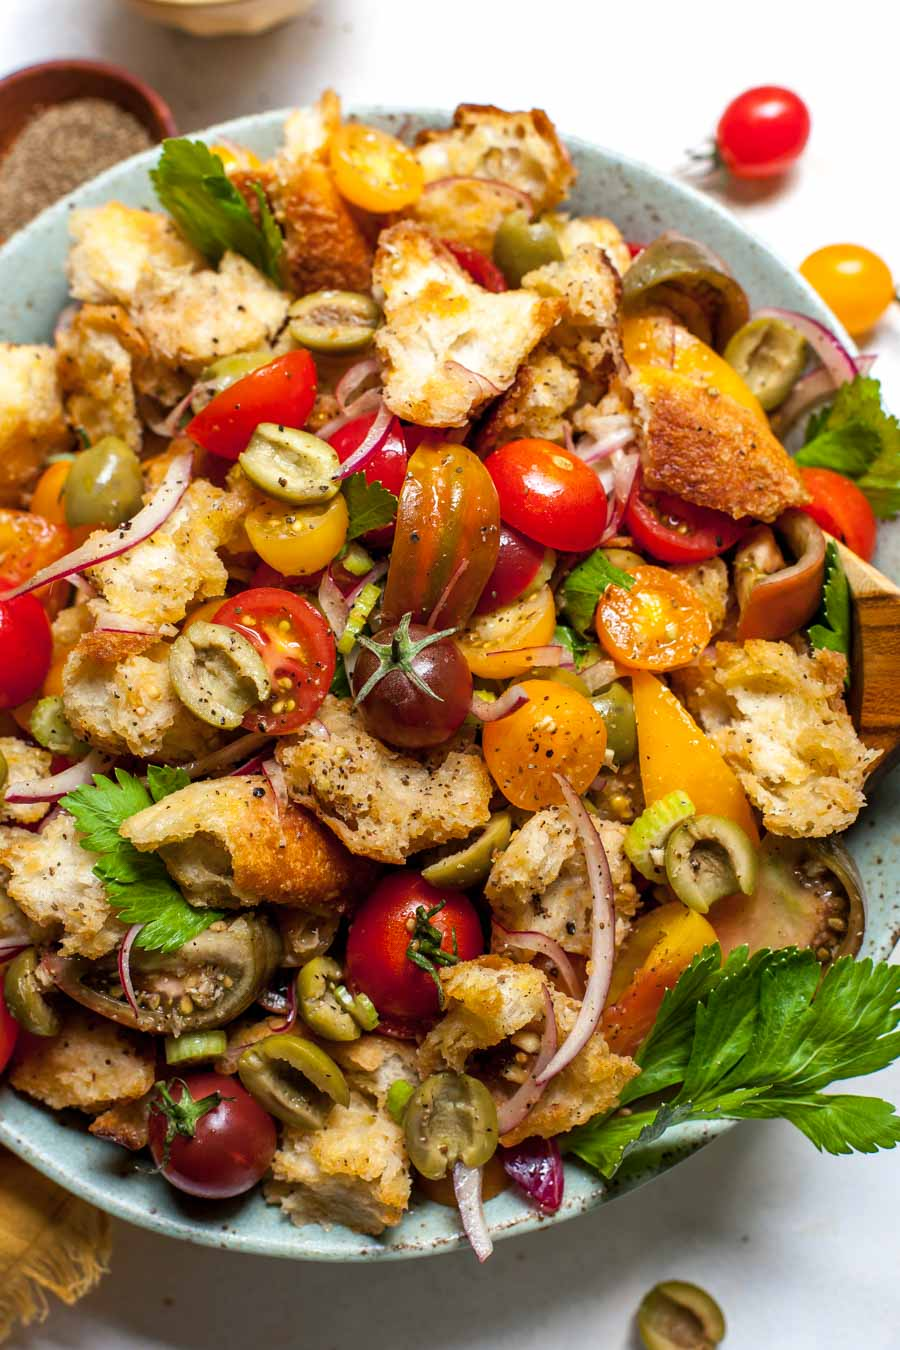 Tomato and Olive Panzanella Salad with Bloody Mary-inspired Dressing